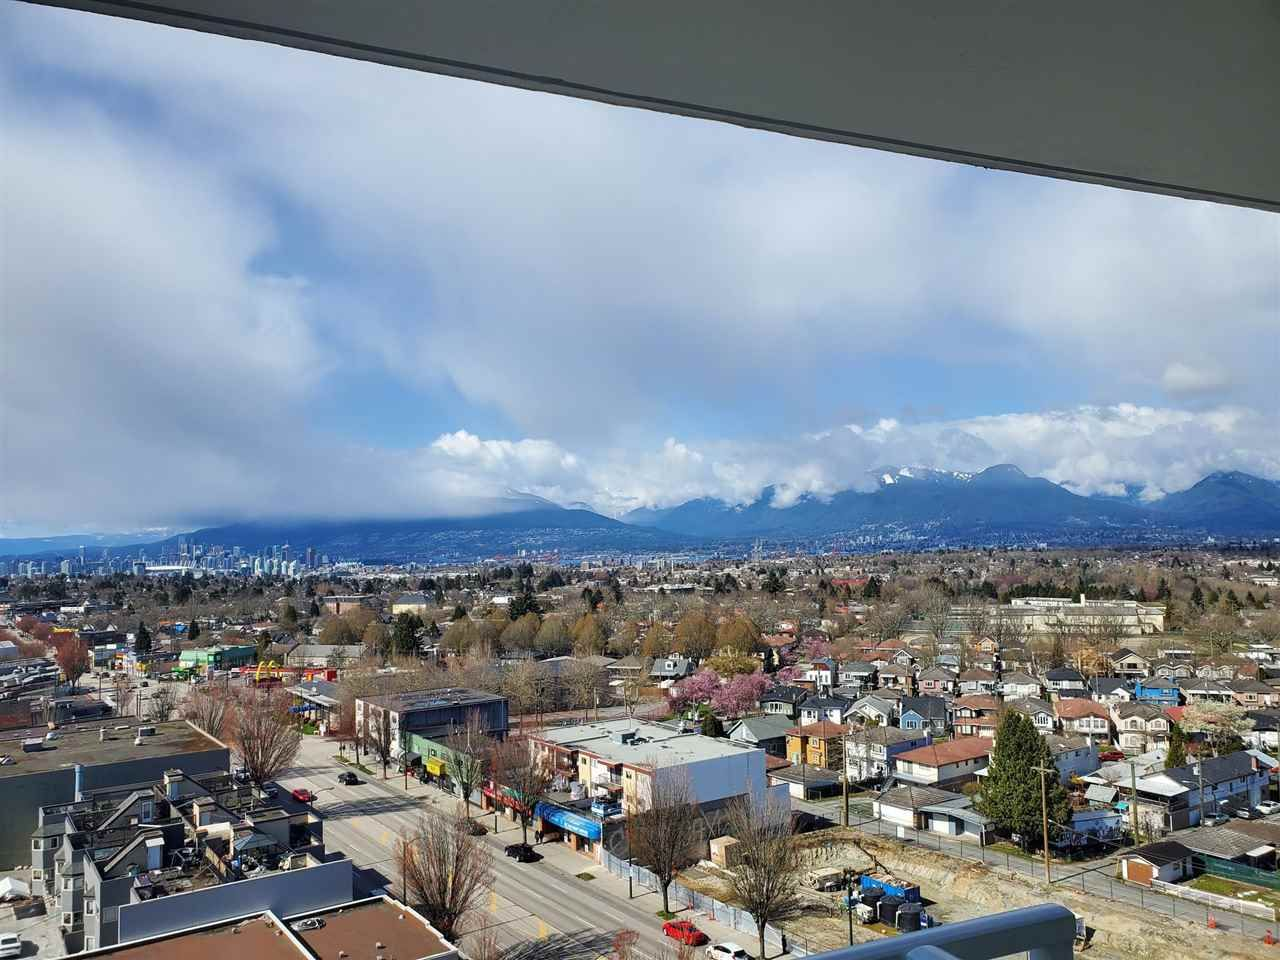 Main Photo: 1506 4638 GLADSTONE Street in Vancouver: Victoria VE Condo for sale (Vancouver East)  : MLS®# R2526351